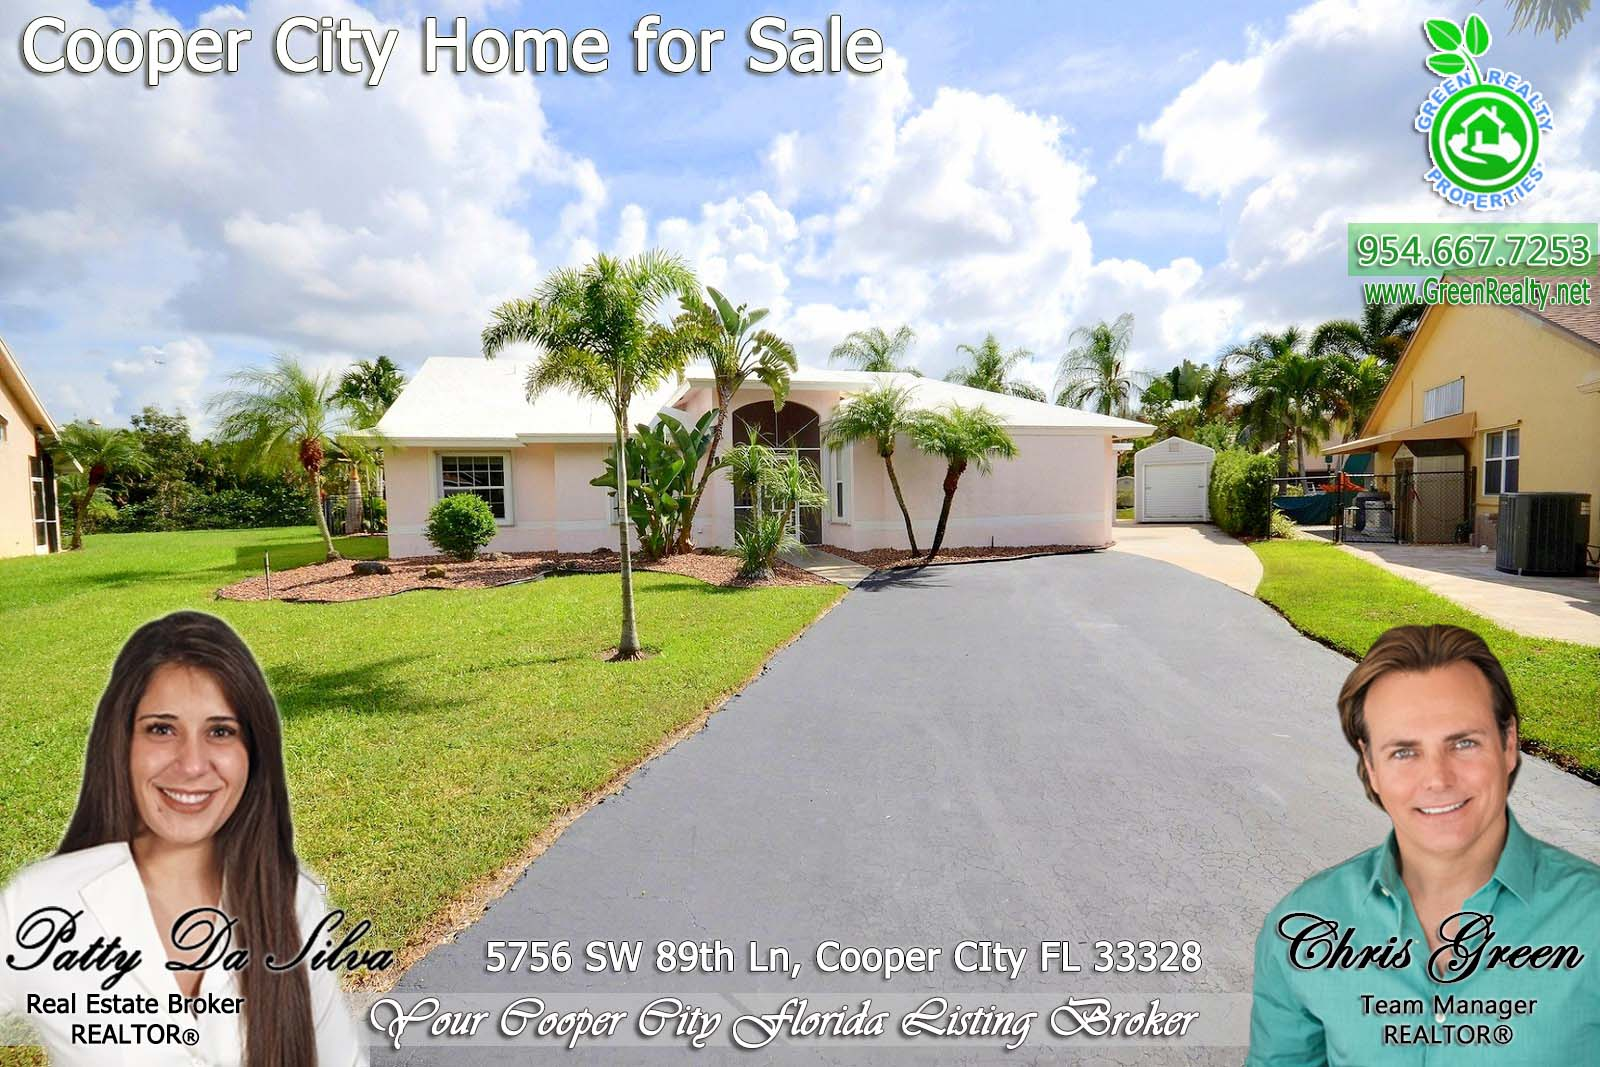 Cooper City Florida Homes For Sale